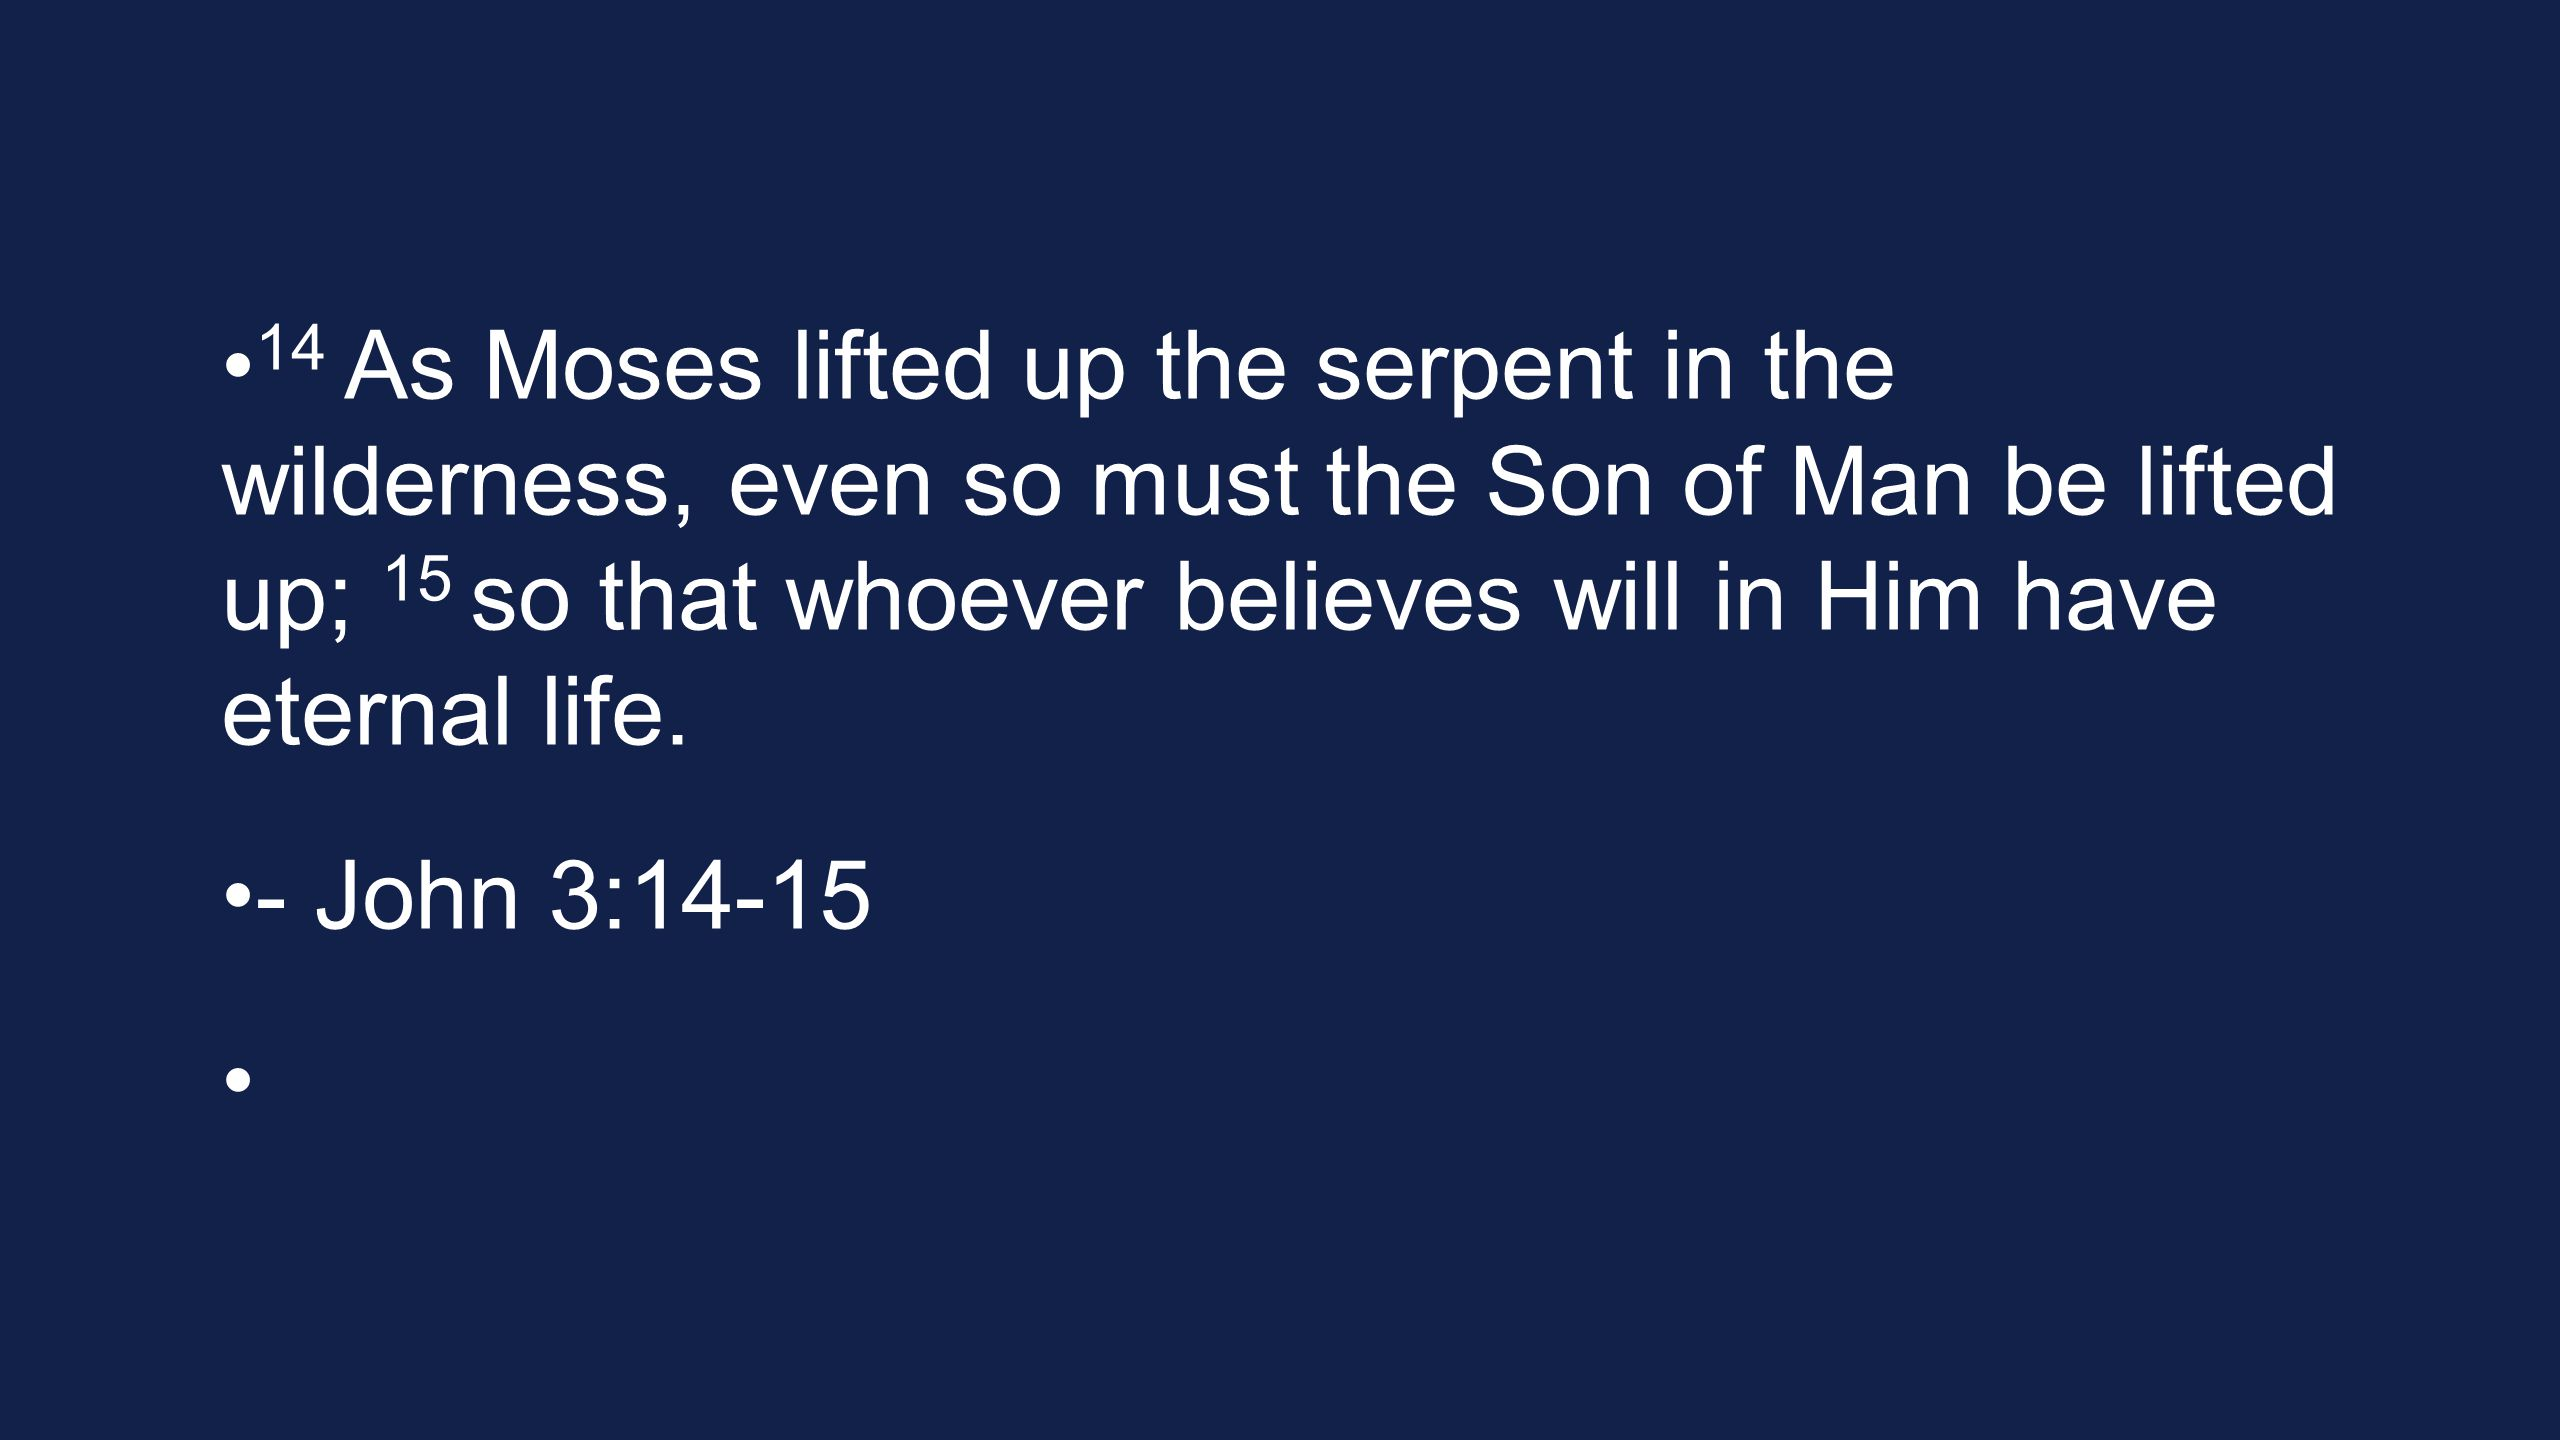 14 As Moses lifted up the serpent in the wilderness, even so must the Son of Man be lifted up; 15 so that whoever believes will in Him have eternal life.